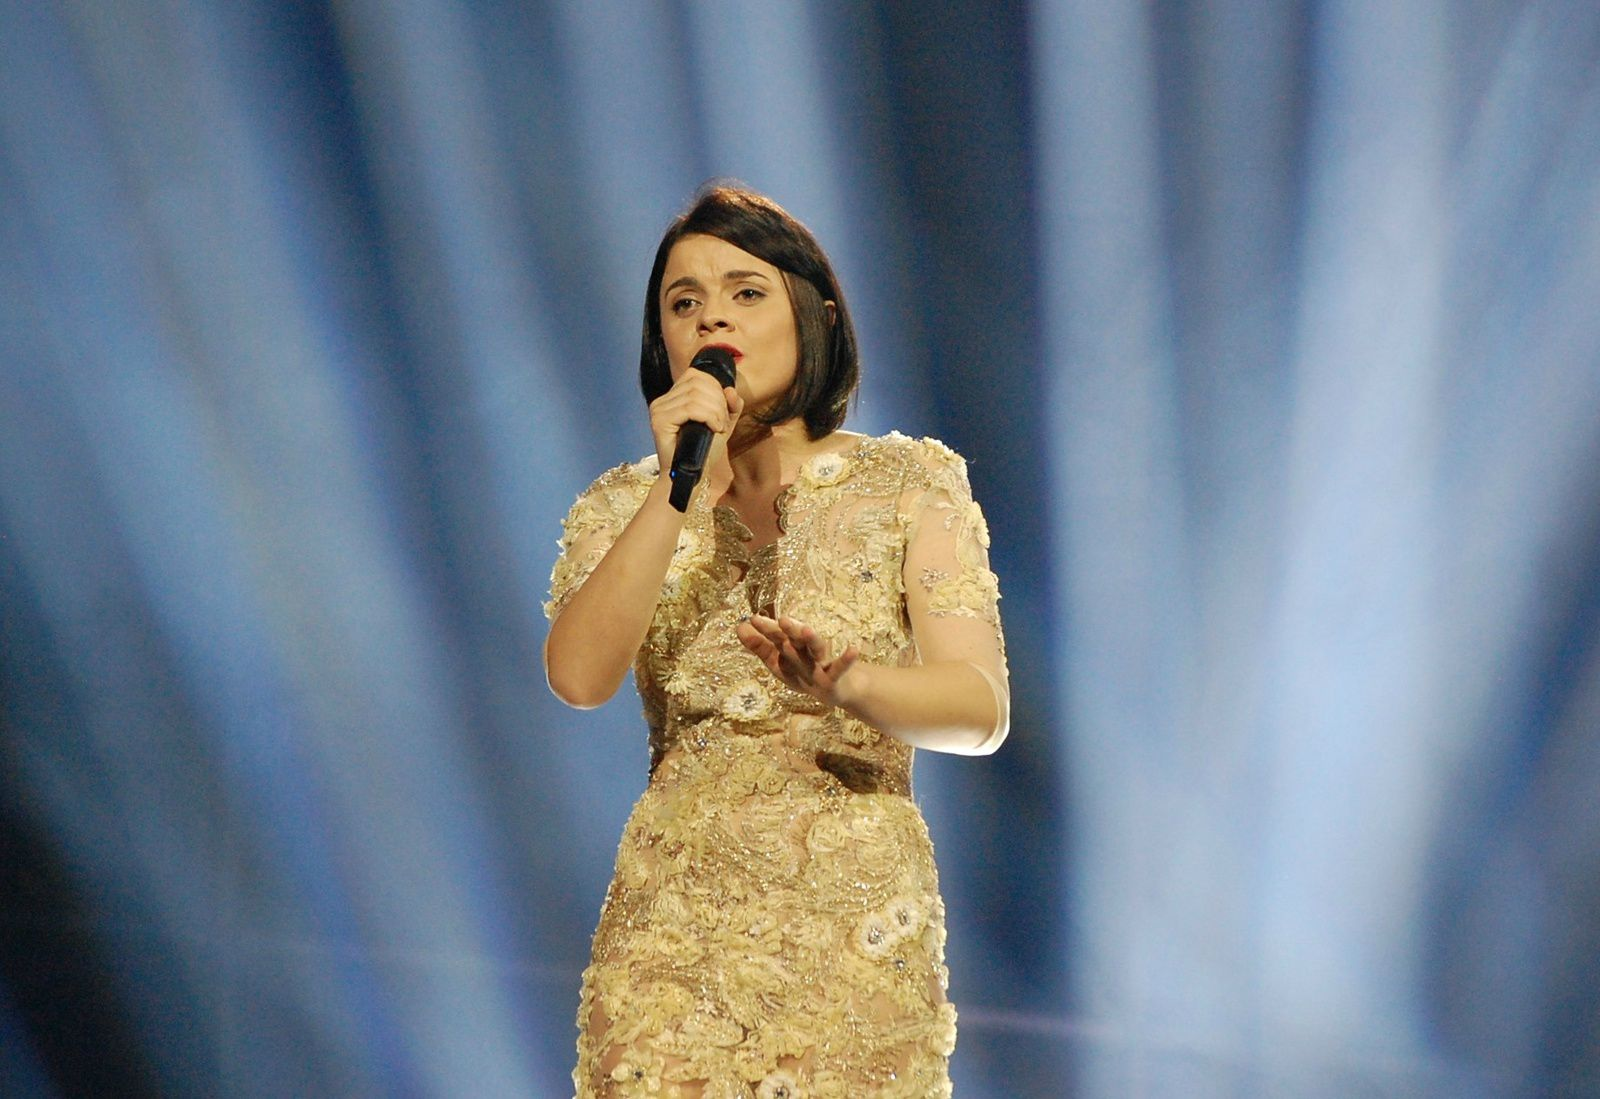 Eurovision 2014 : Hersi - One Night's Anger (Albania) Impressions of second rehearsal